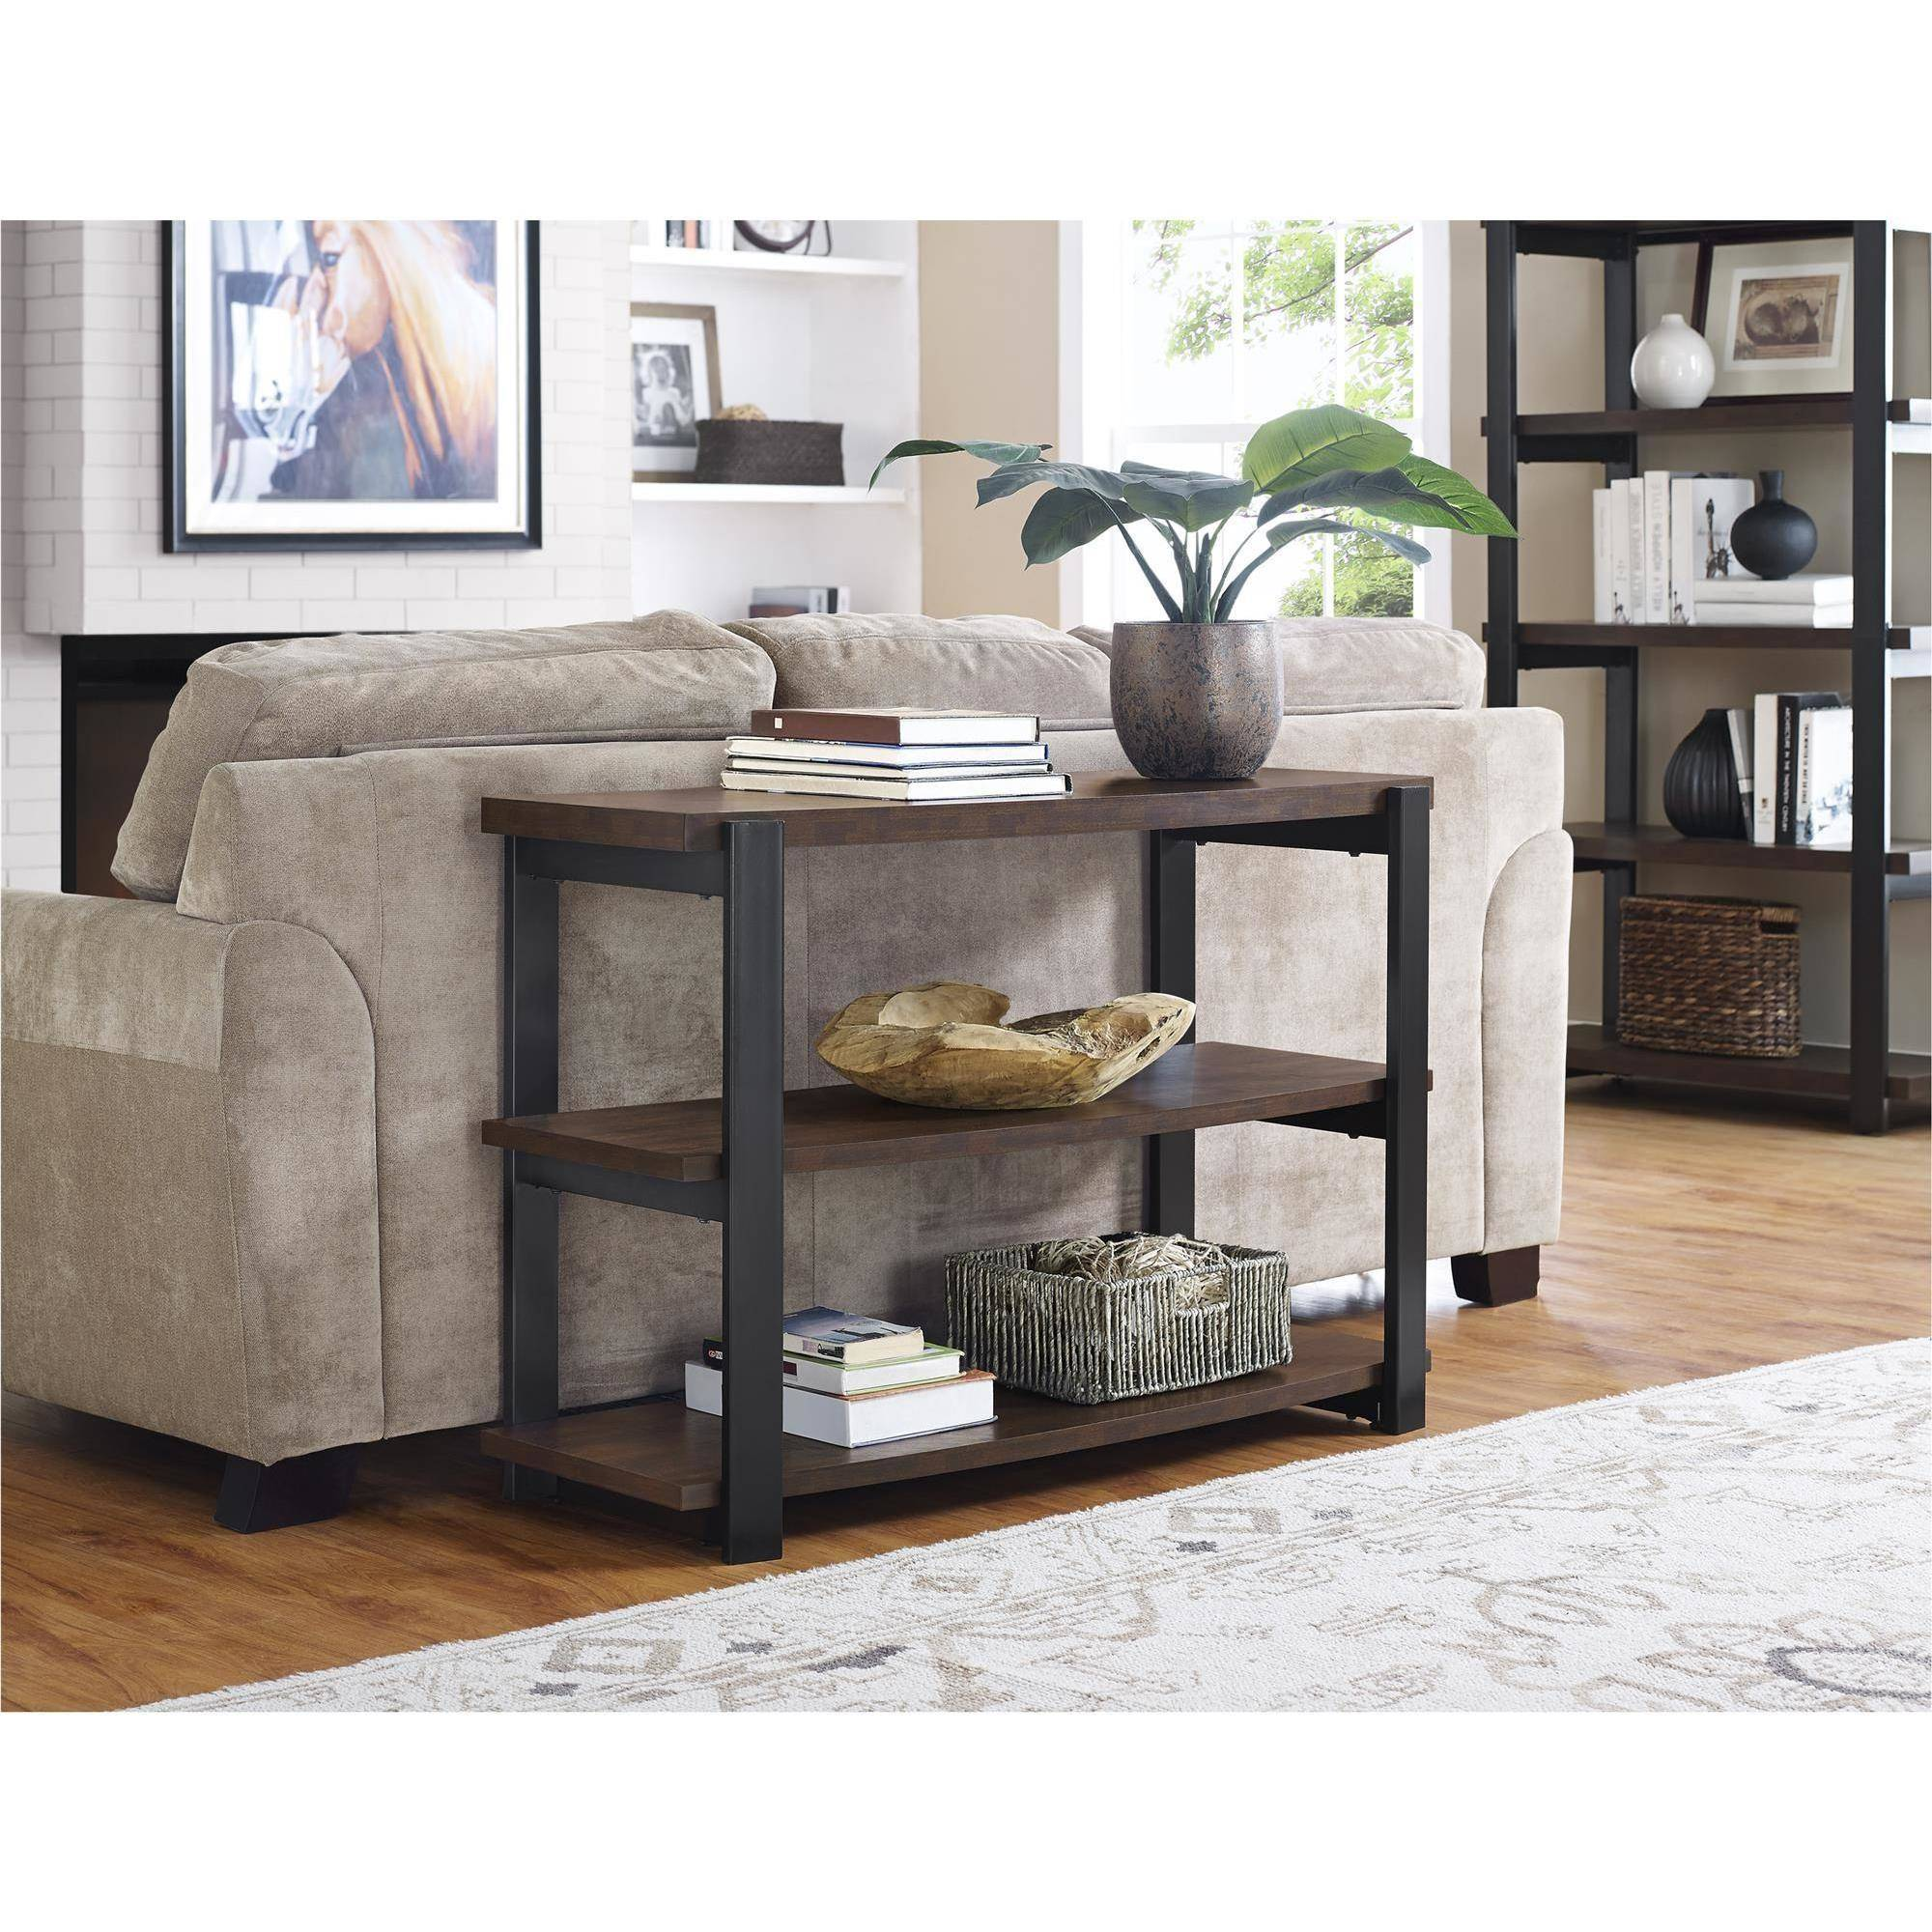 Ameriwood Home Castling Console Table, Espresso by Ameriwood